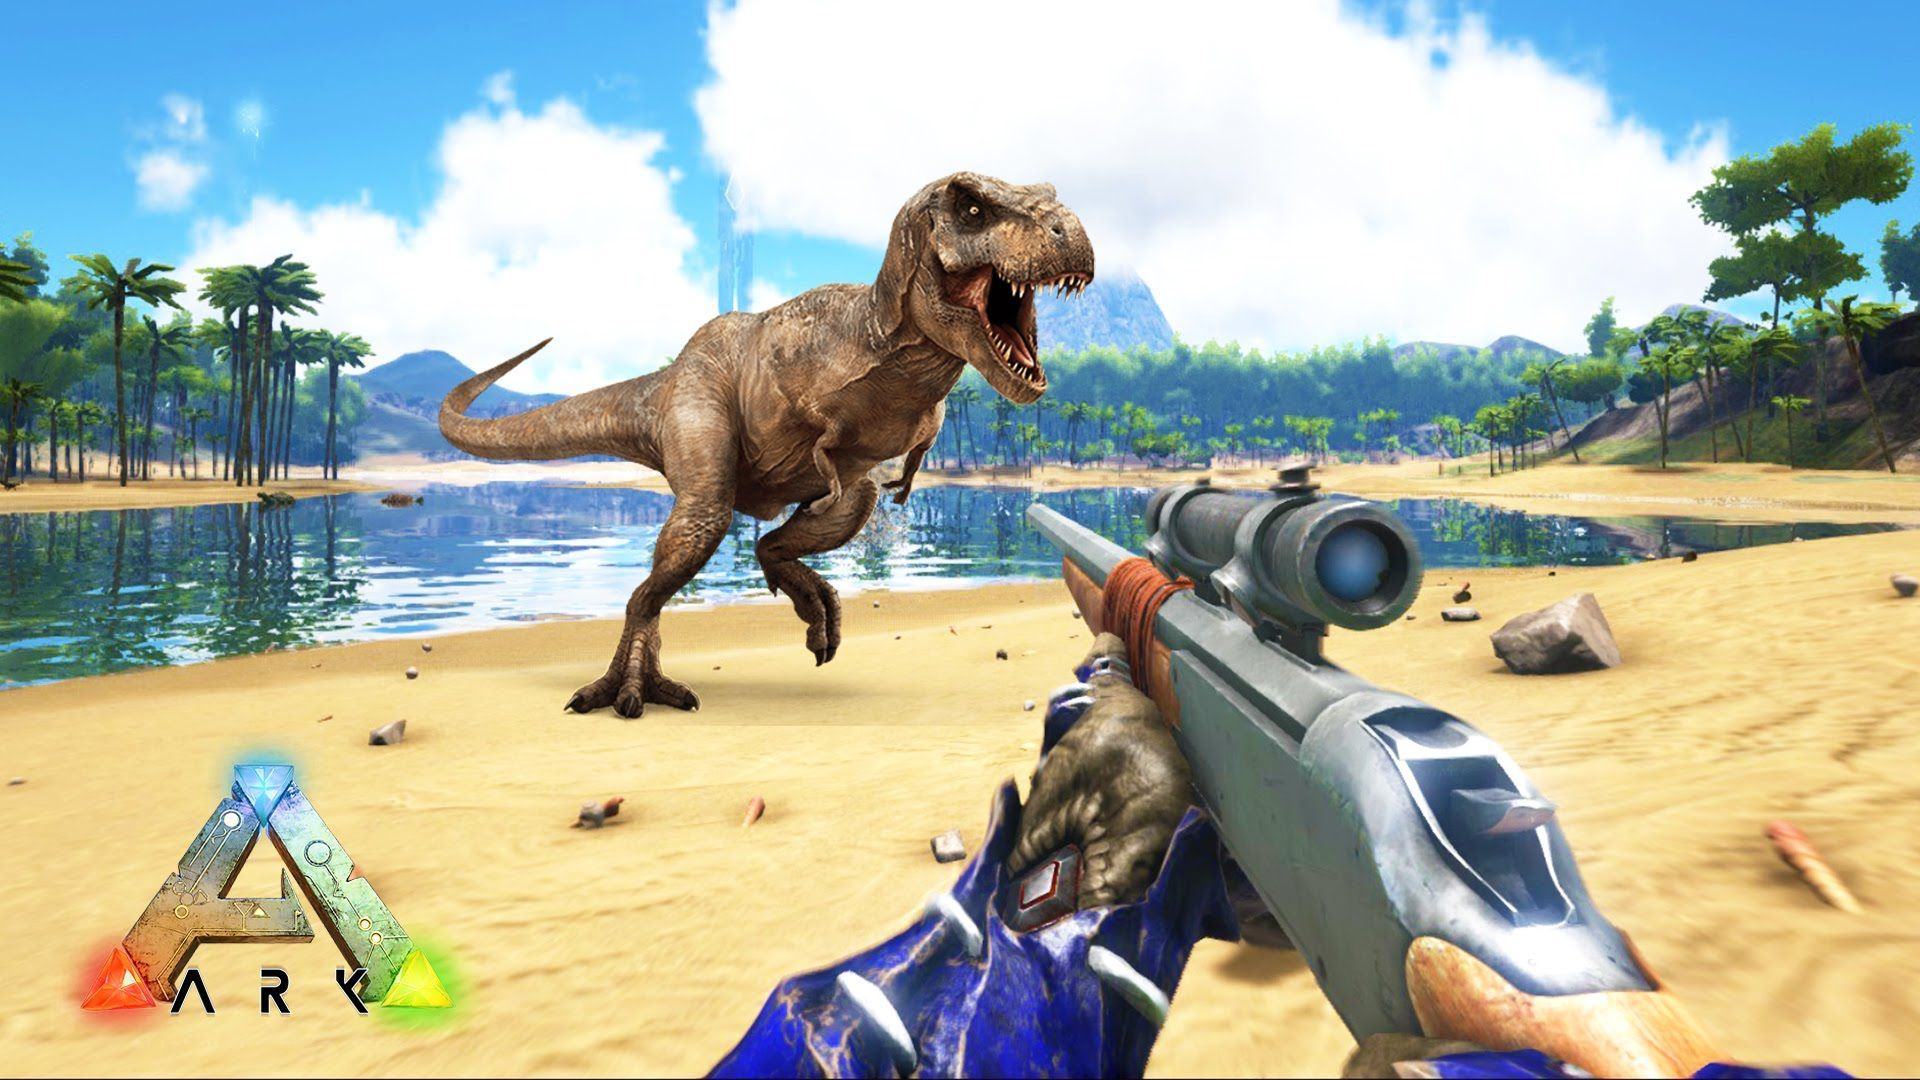 Ark survival evolved sniper rifle hunting dinosaurs ark ark survival evolved sniper rifle hunting dinosaurs ark survival e malvernweather